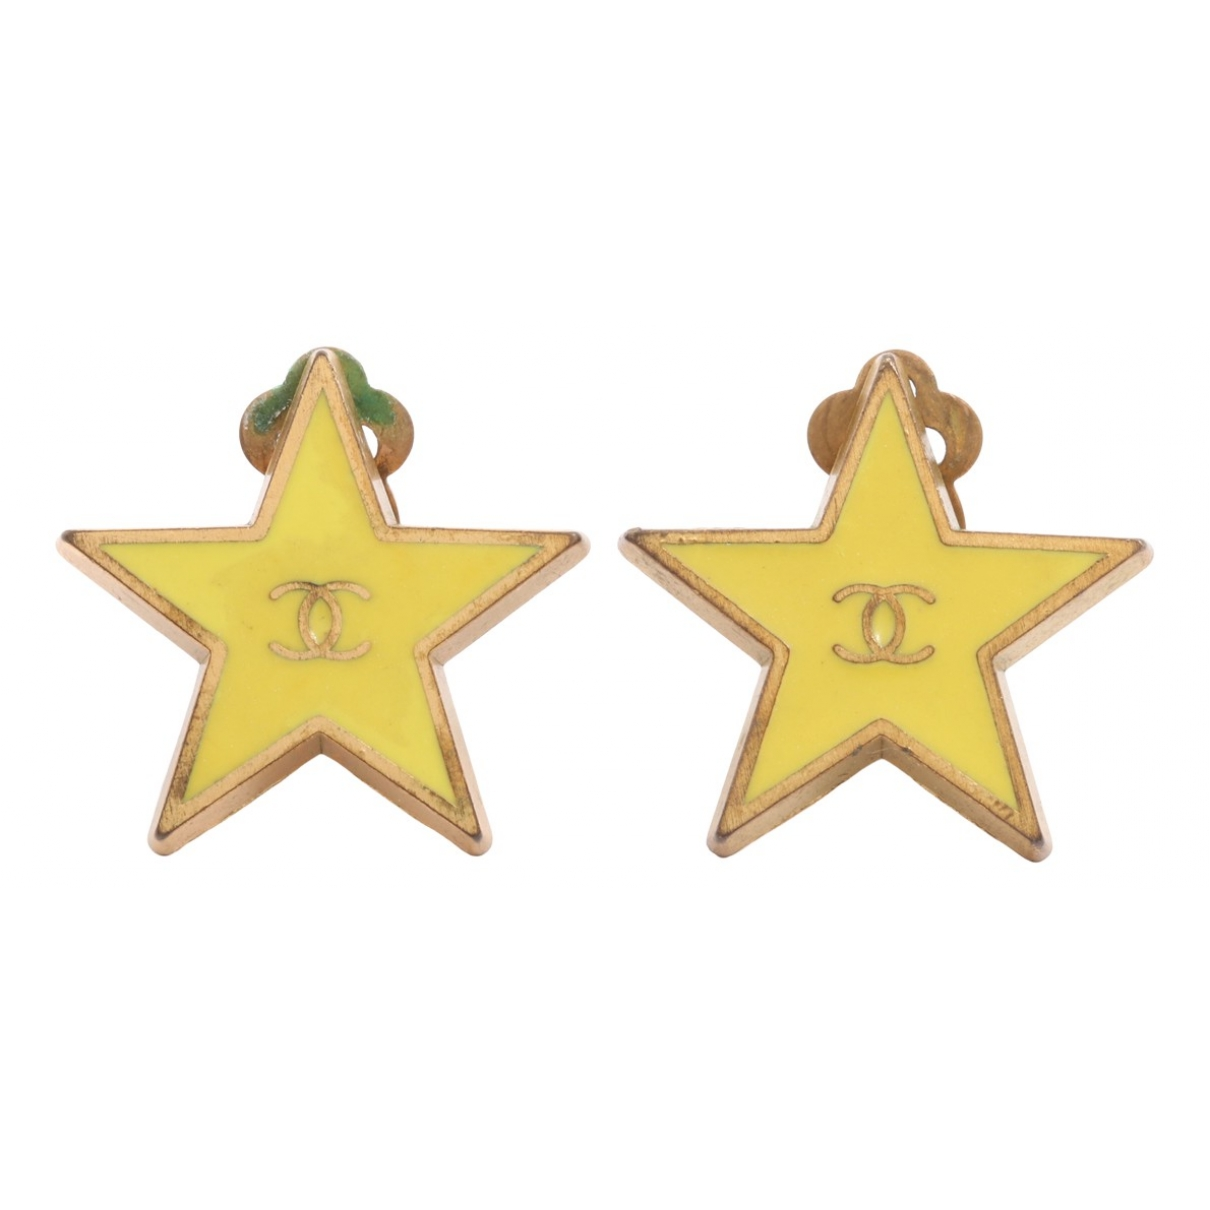 Chanel \N Yellow Gold plated Earrings for Women \N